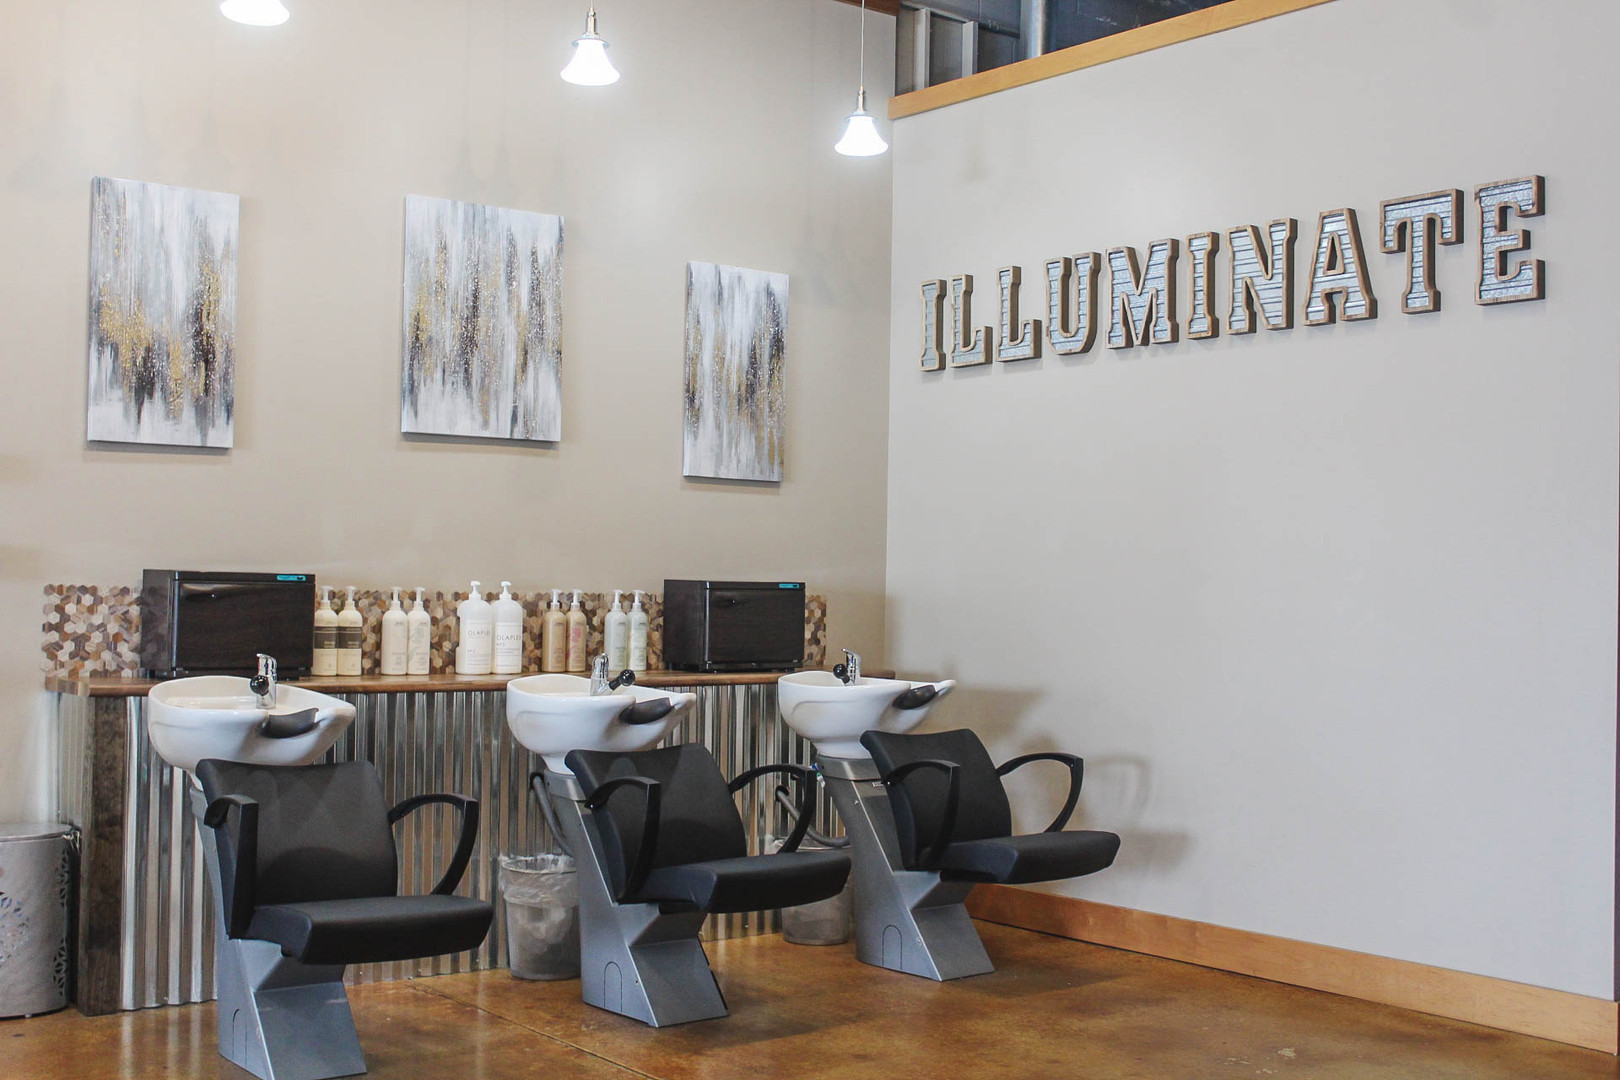 Illuminate Salon and Spa